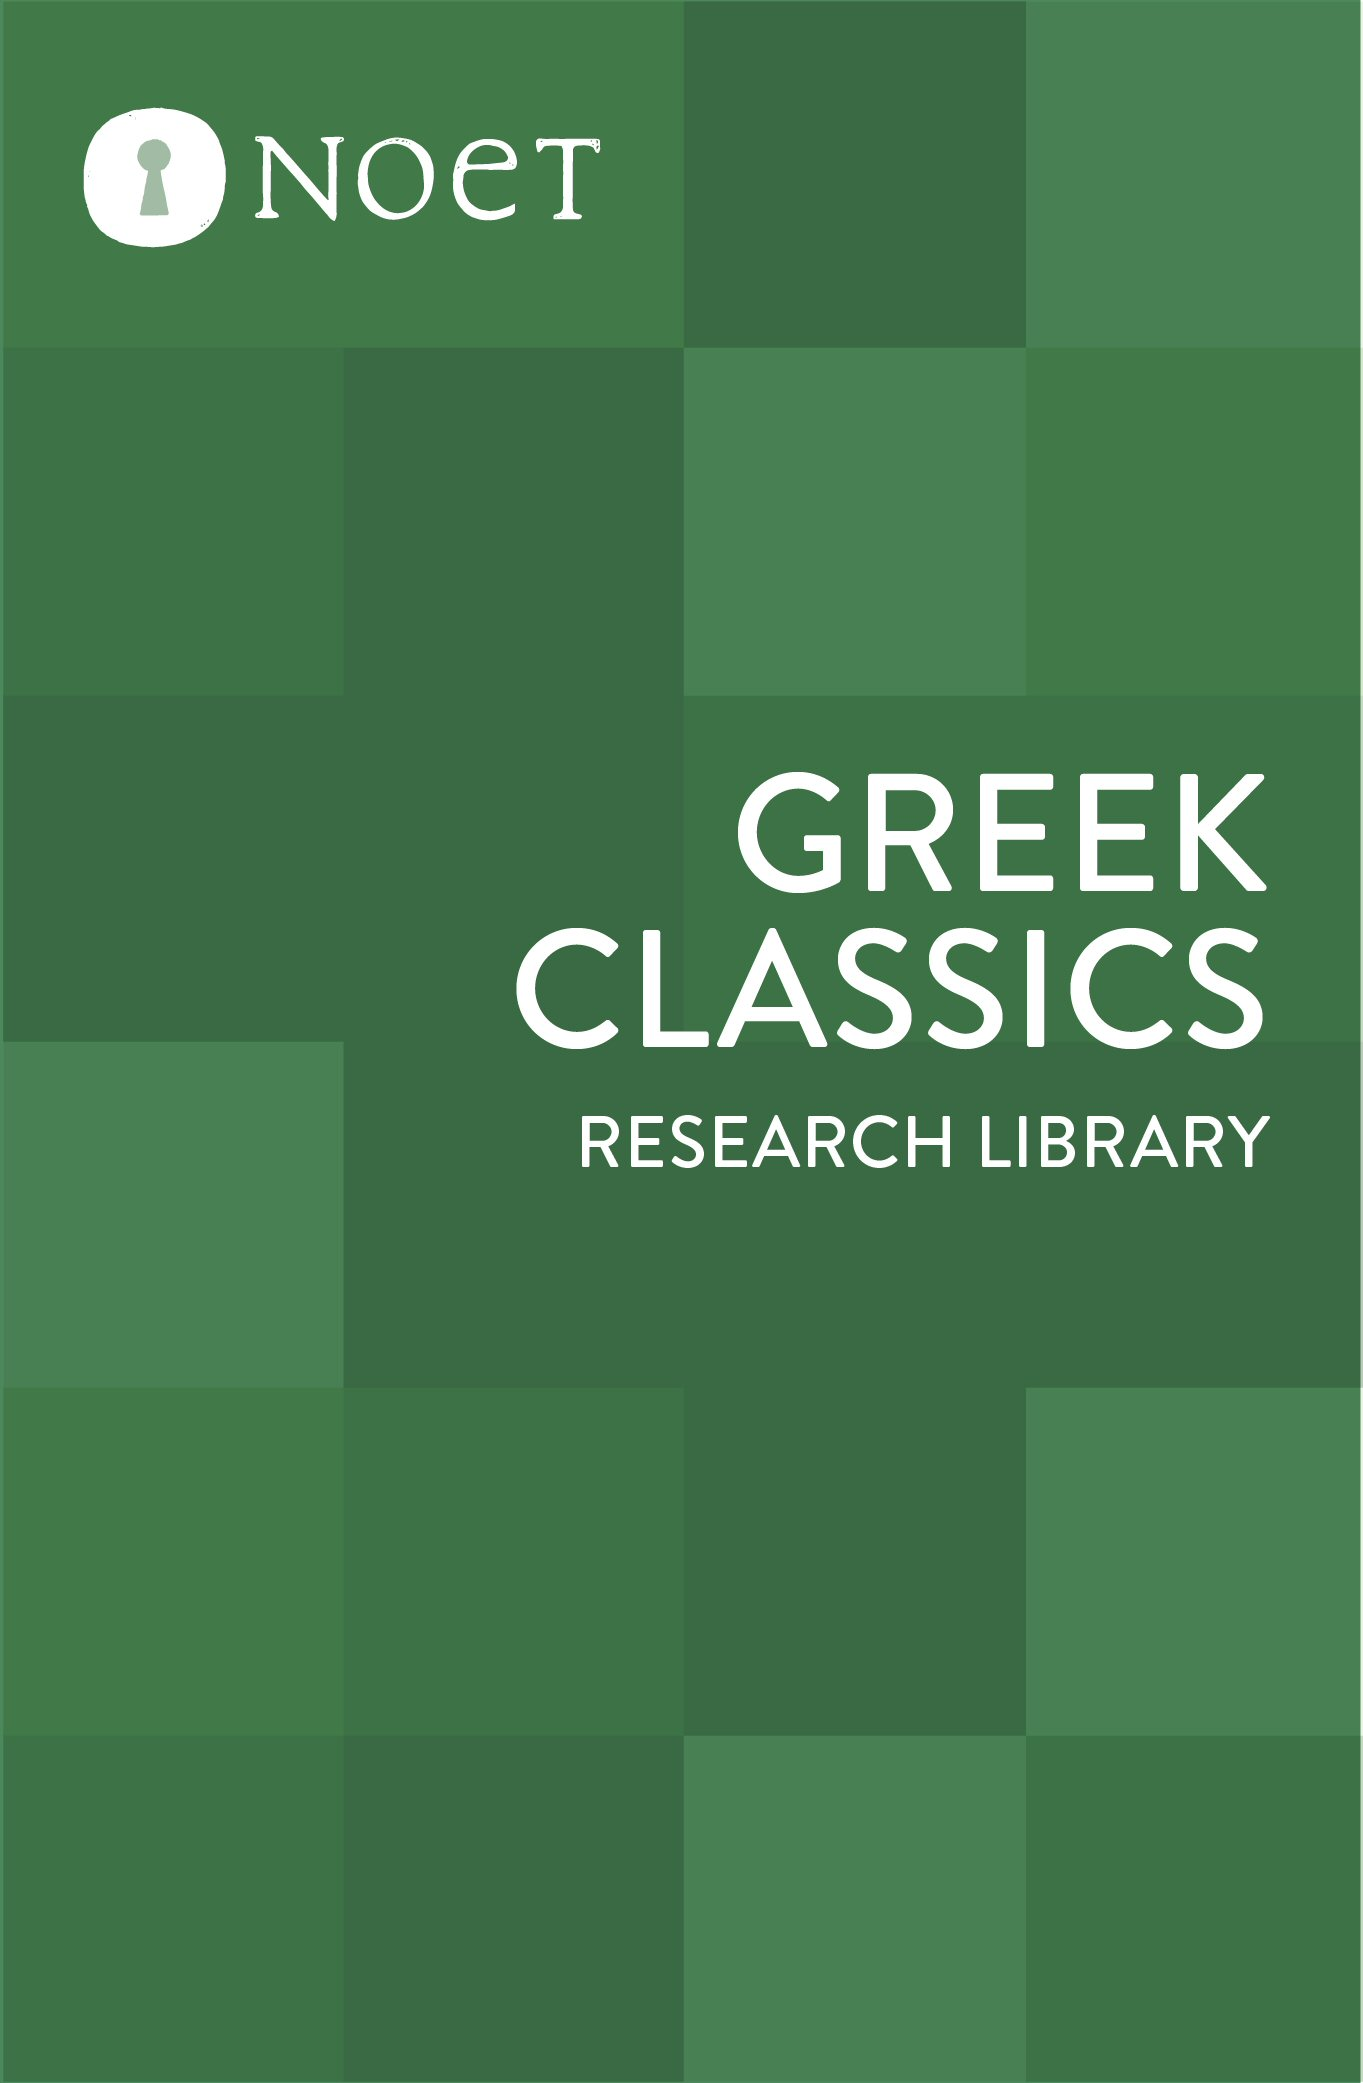 Greek Classics Research Library (110 vols. plus Perseus Greek Classics)